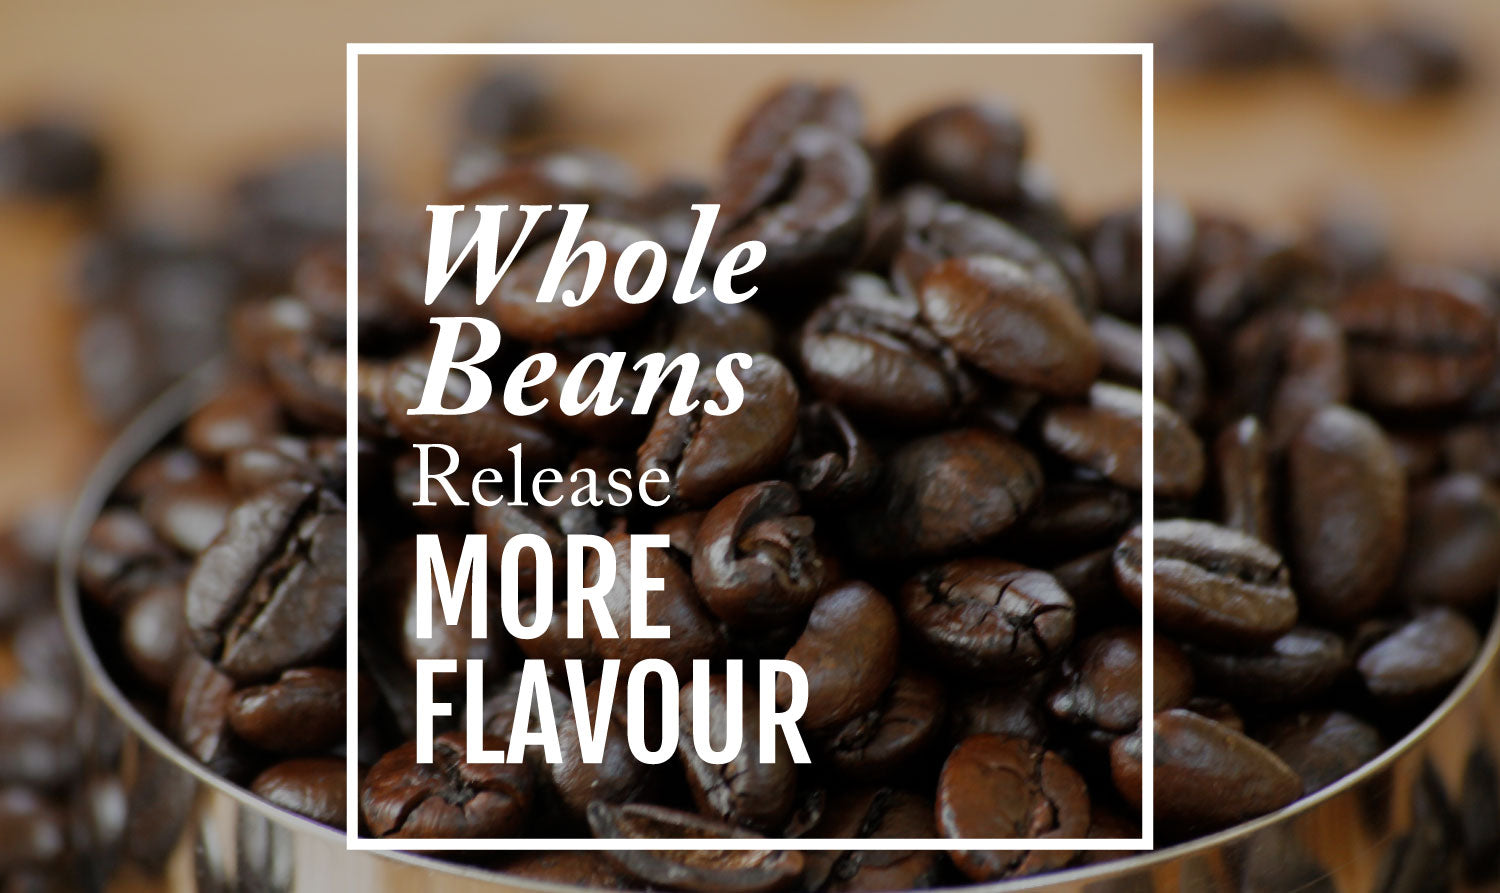 Whole Beans Release More Flavour